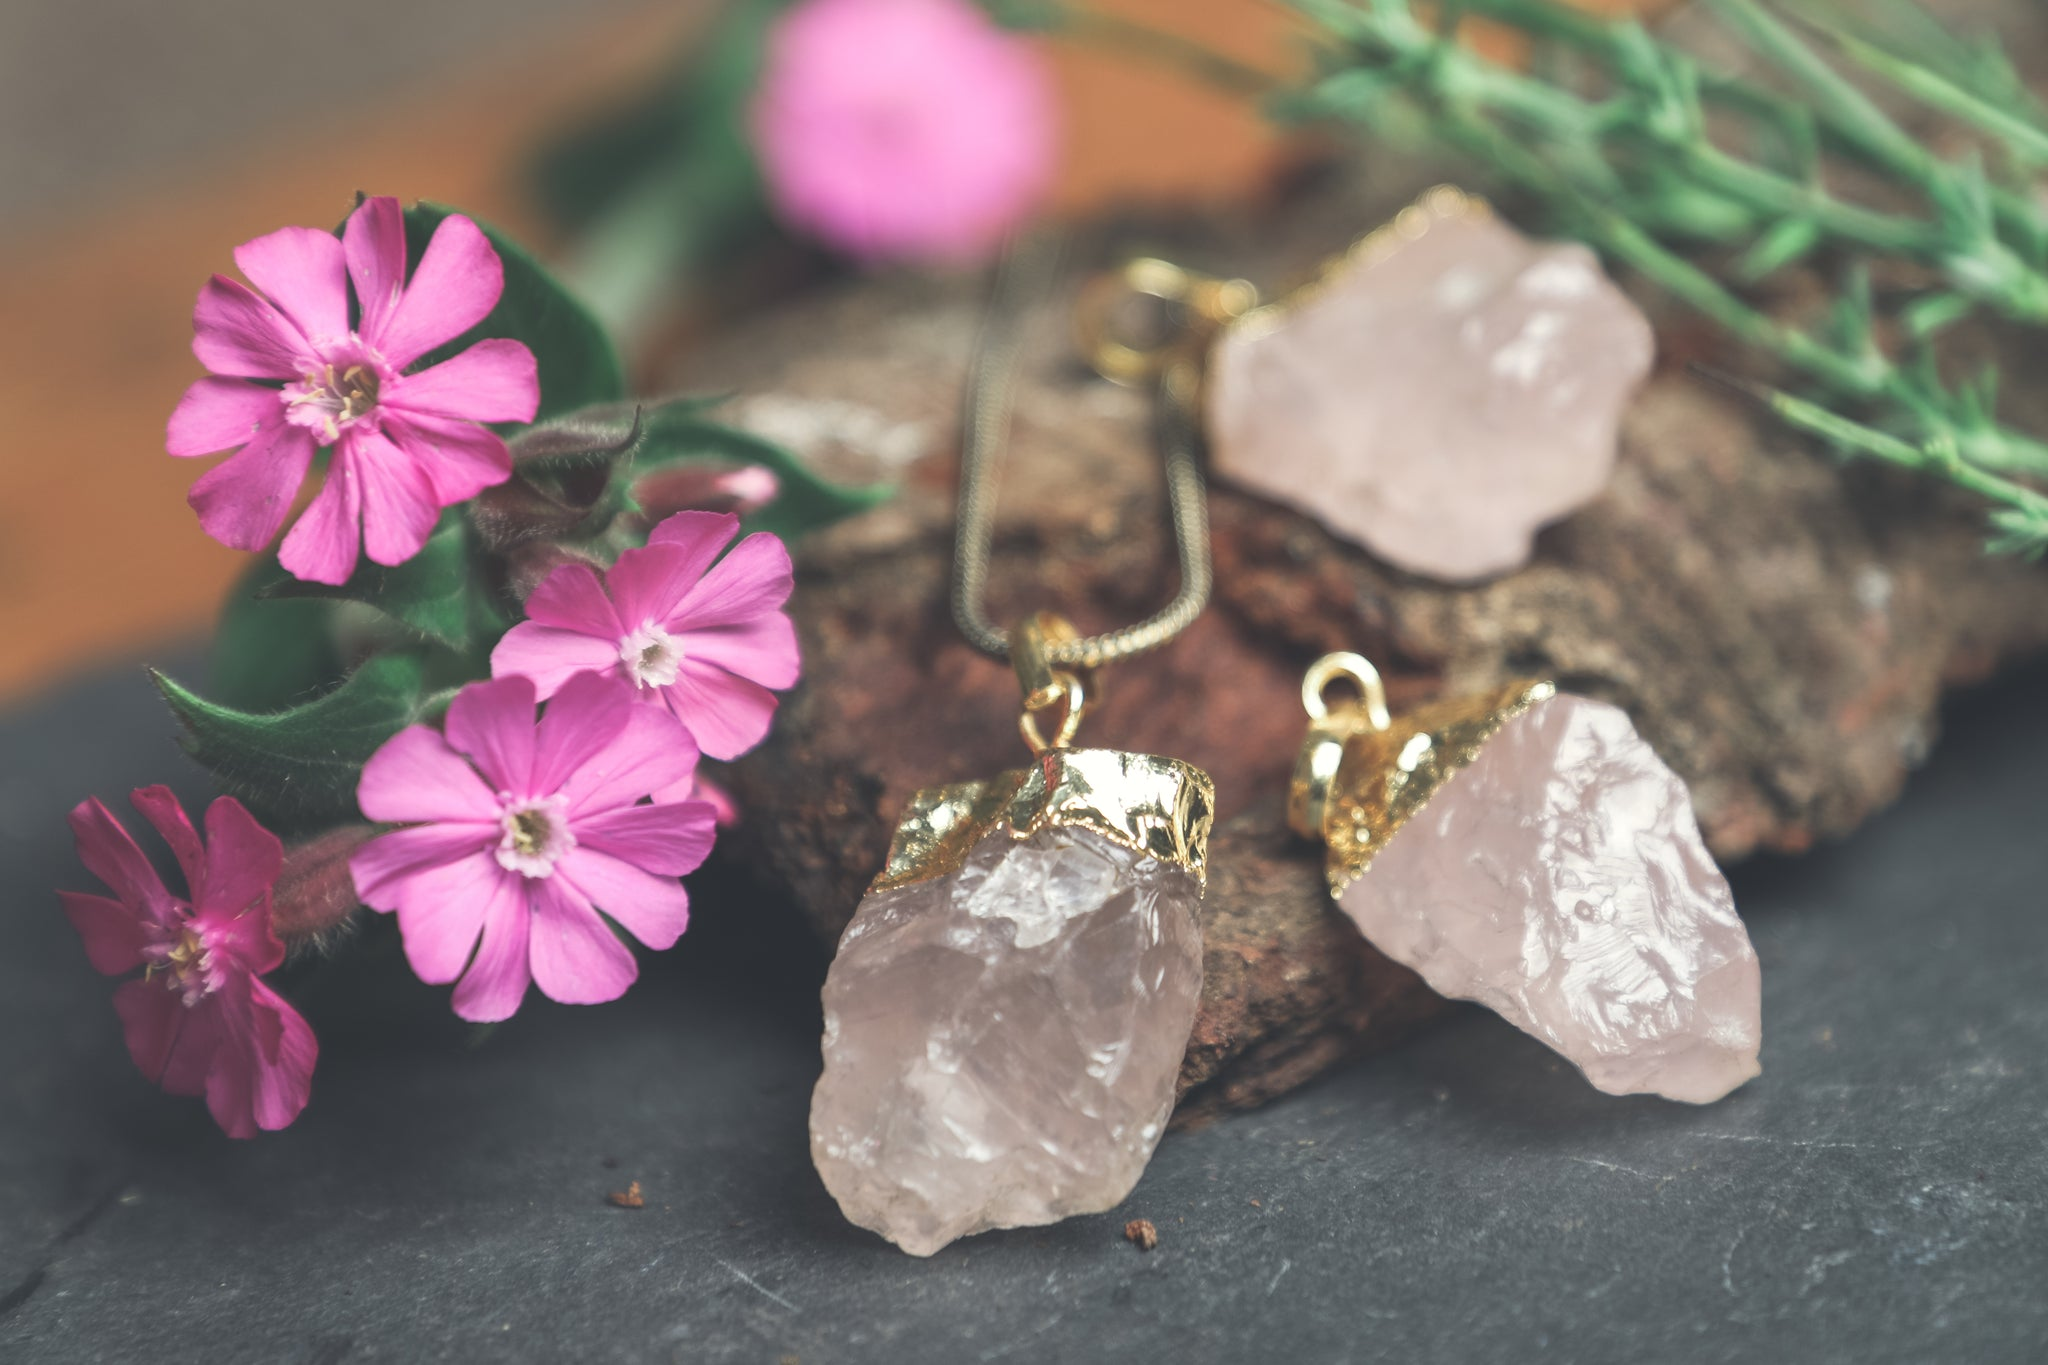 crystal jewellery, crystal necklace, bohemian apparel, festival fashion, ethical brand uk, rose quartz rough cut crystals